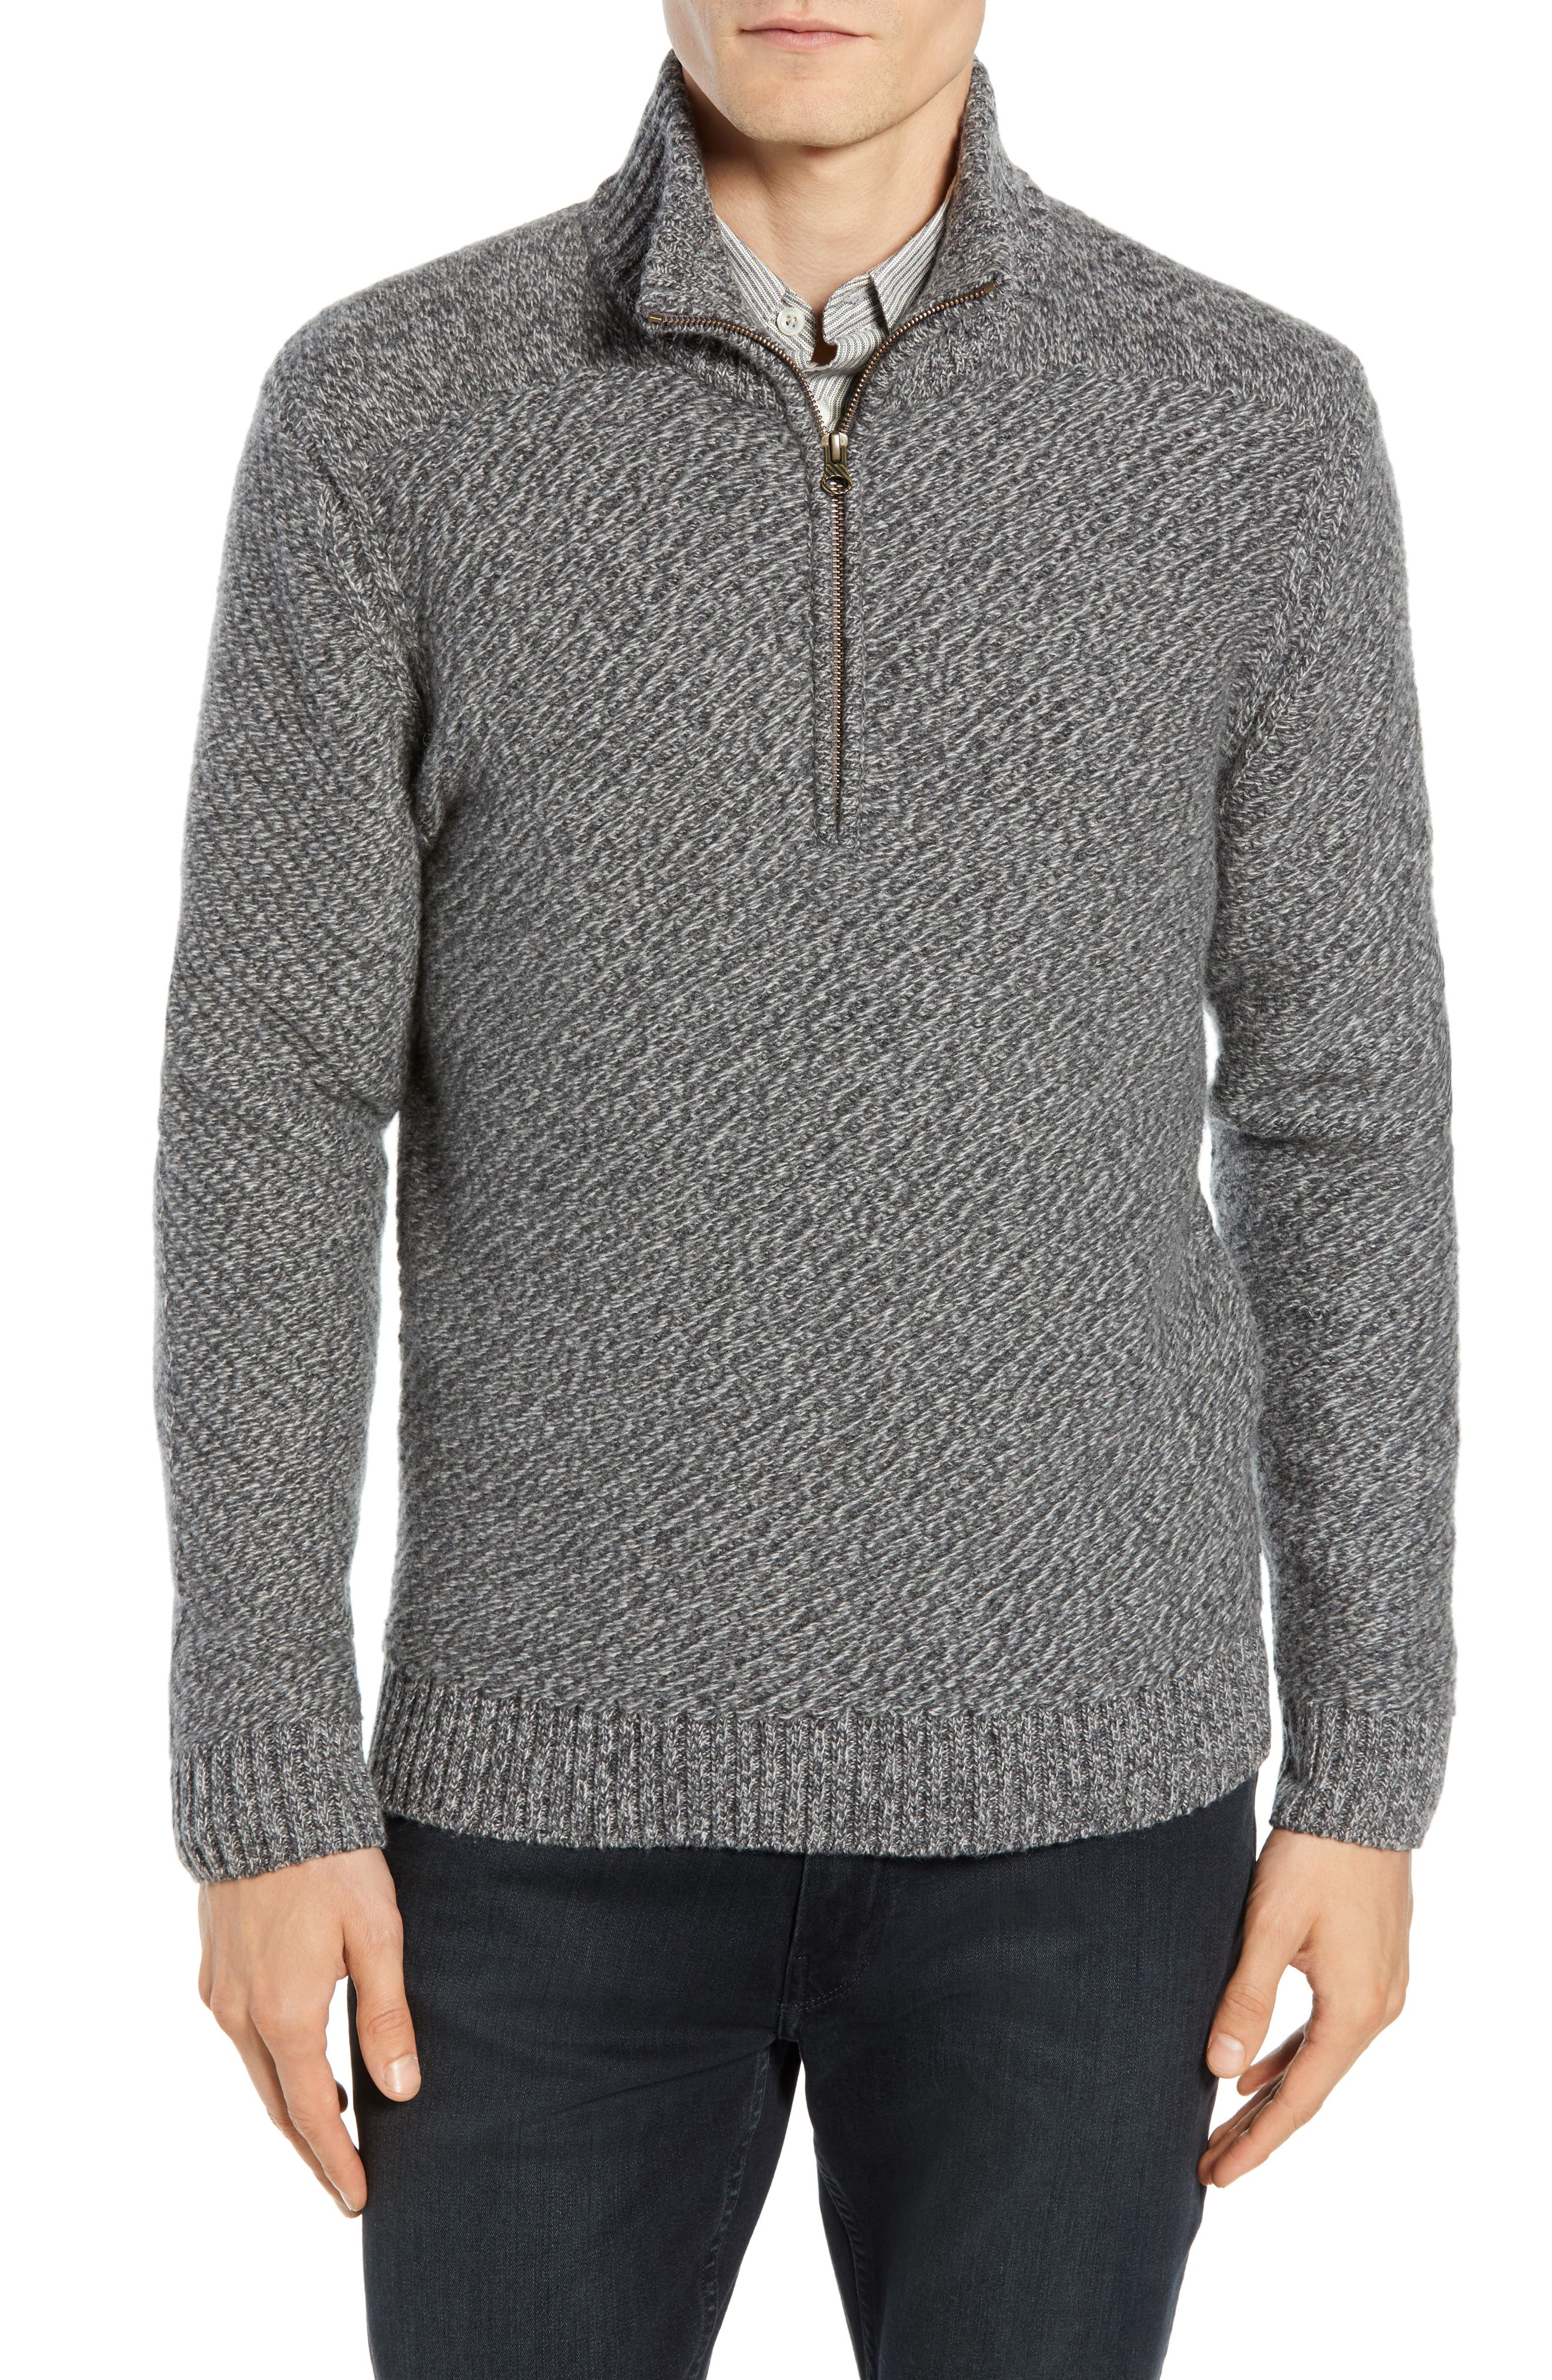 Cashmere Half Zip Sweater,                         Main,                         color, CHARCOAL